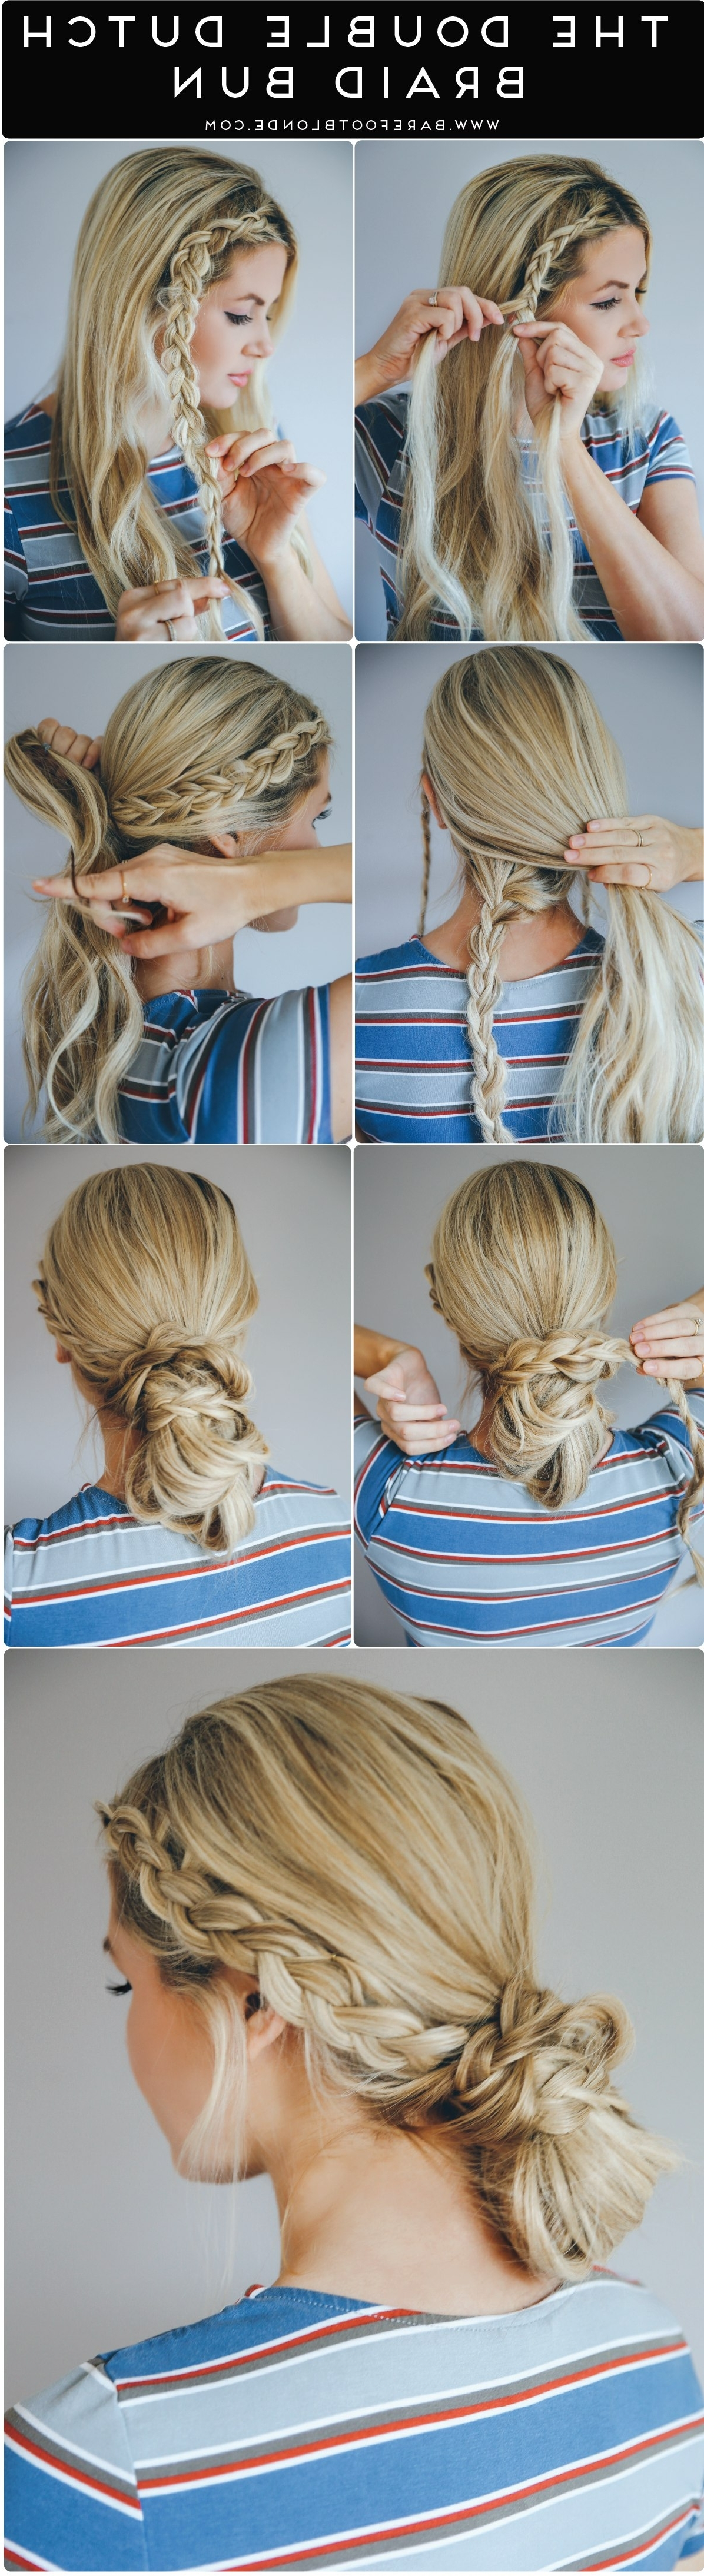 12 Hairstyles That Are Perfect For Your Next Workout – Simplemost With Regard To Most Current Blonde Ponytails With Double Braid (View 15 of 20)